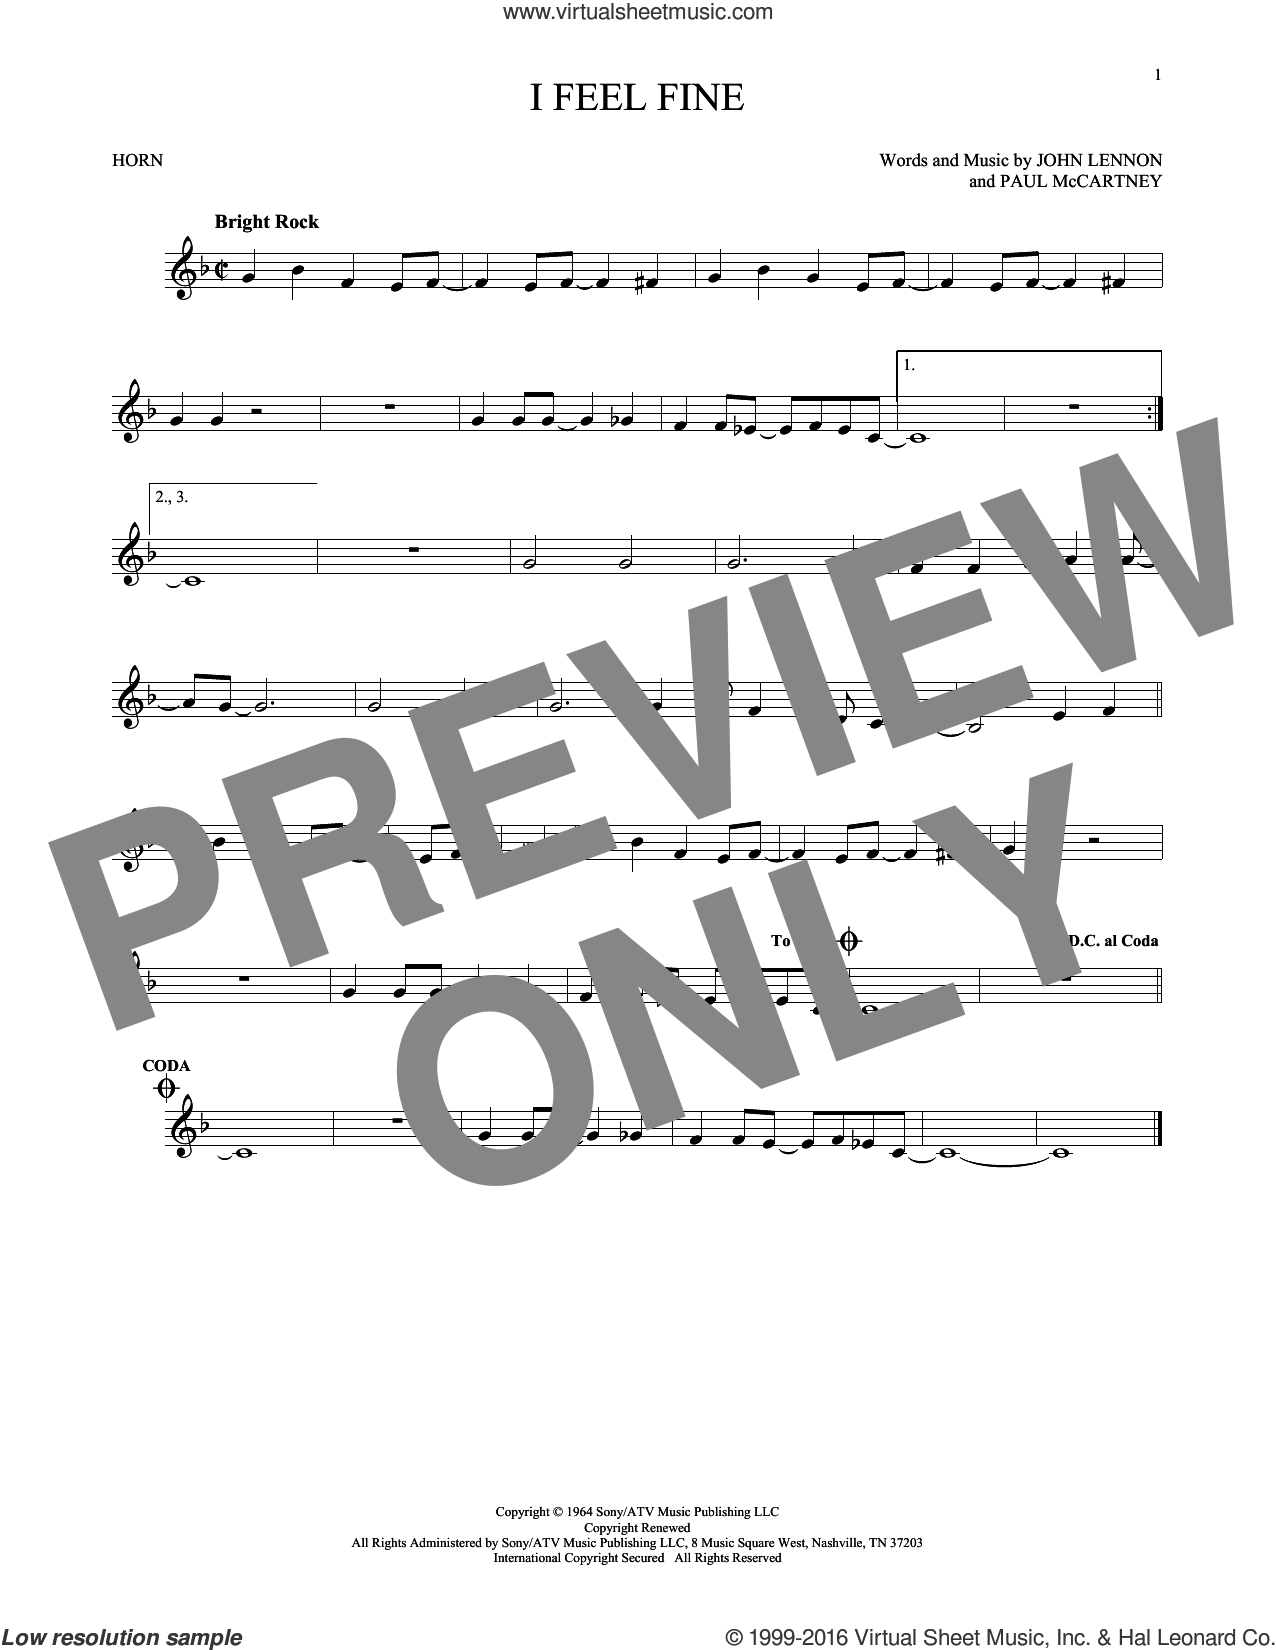 I Feel Fine sheet music for horn solo by The Beatles, John Lennon and Paul McCartney, intermediate skill level